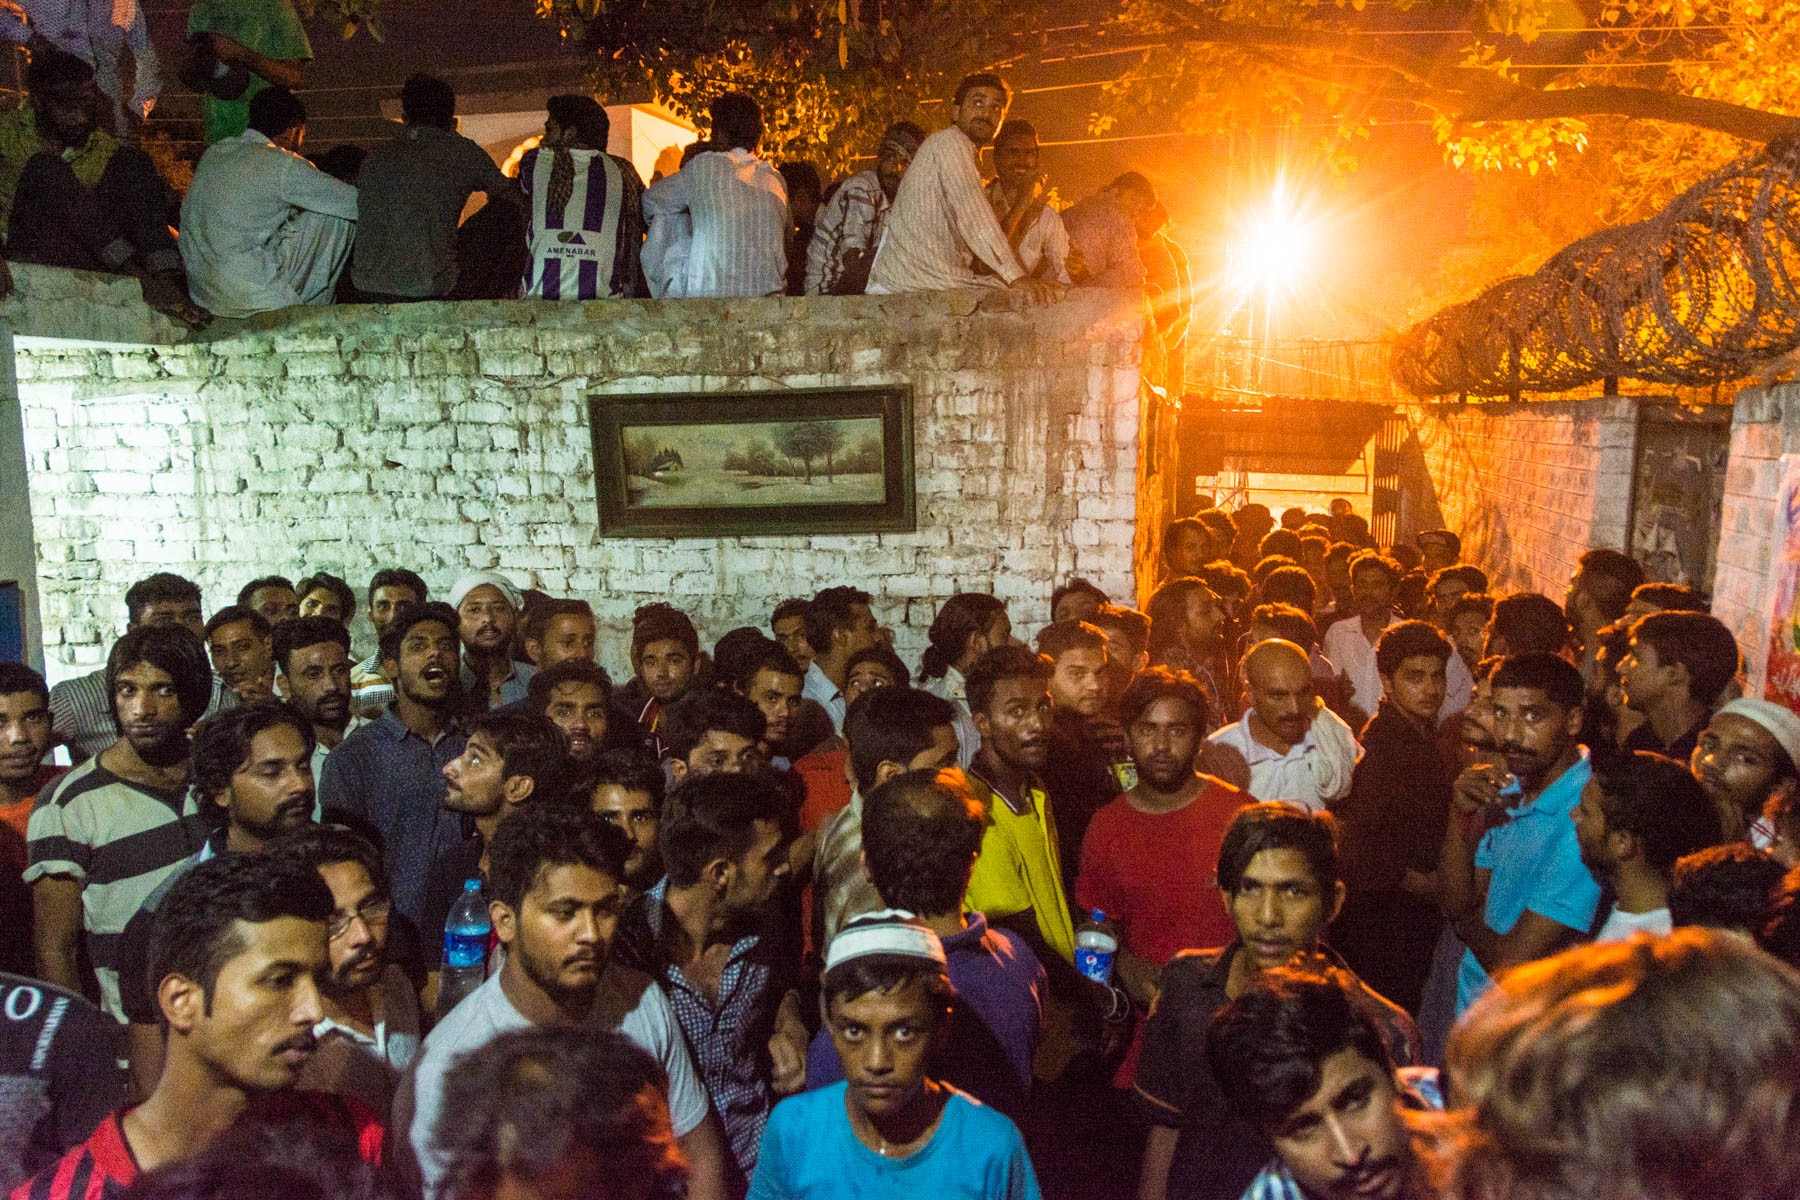 Sufi dhamal in Lahore - Crowd of men at Shah Jamal shrine on Thursday night - Lost With Purpose travel blog